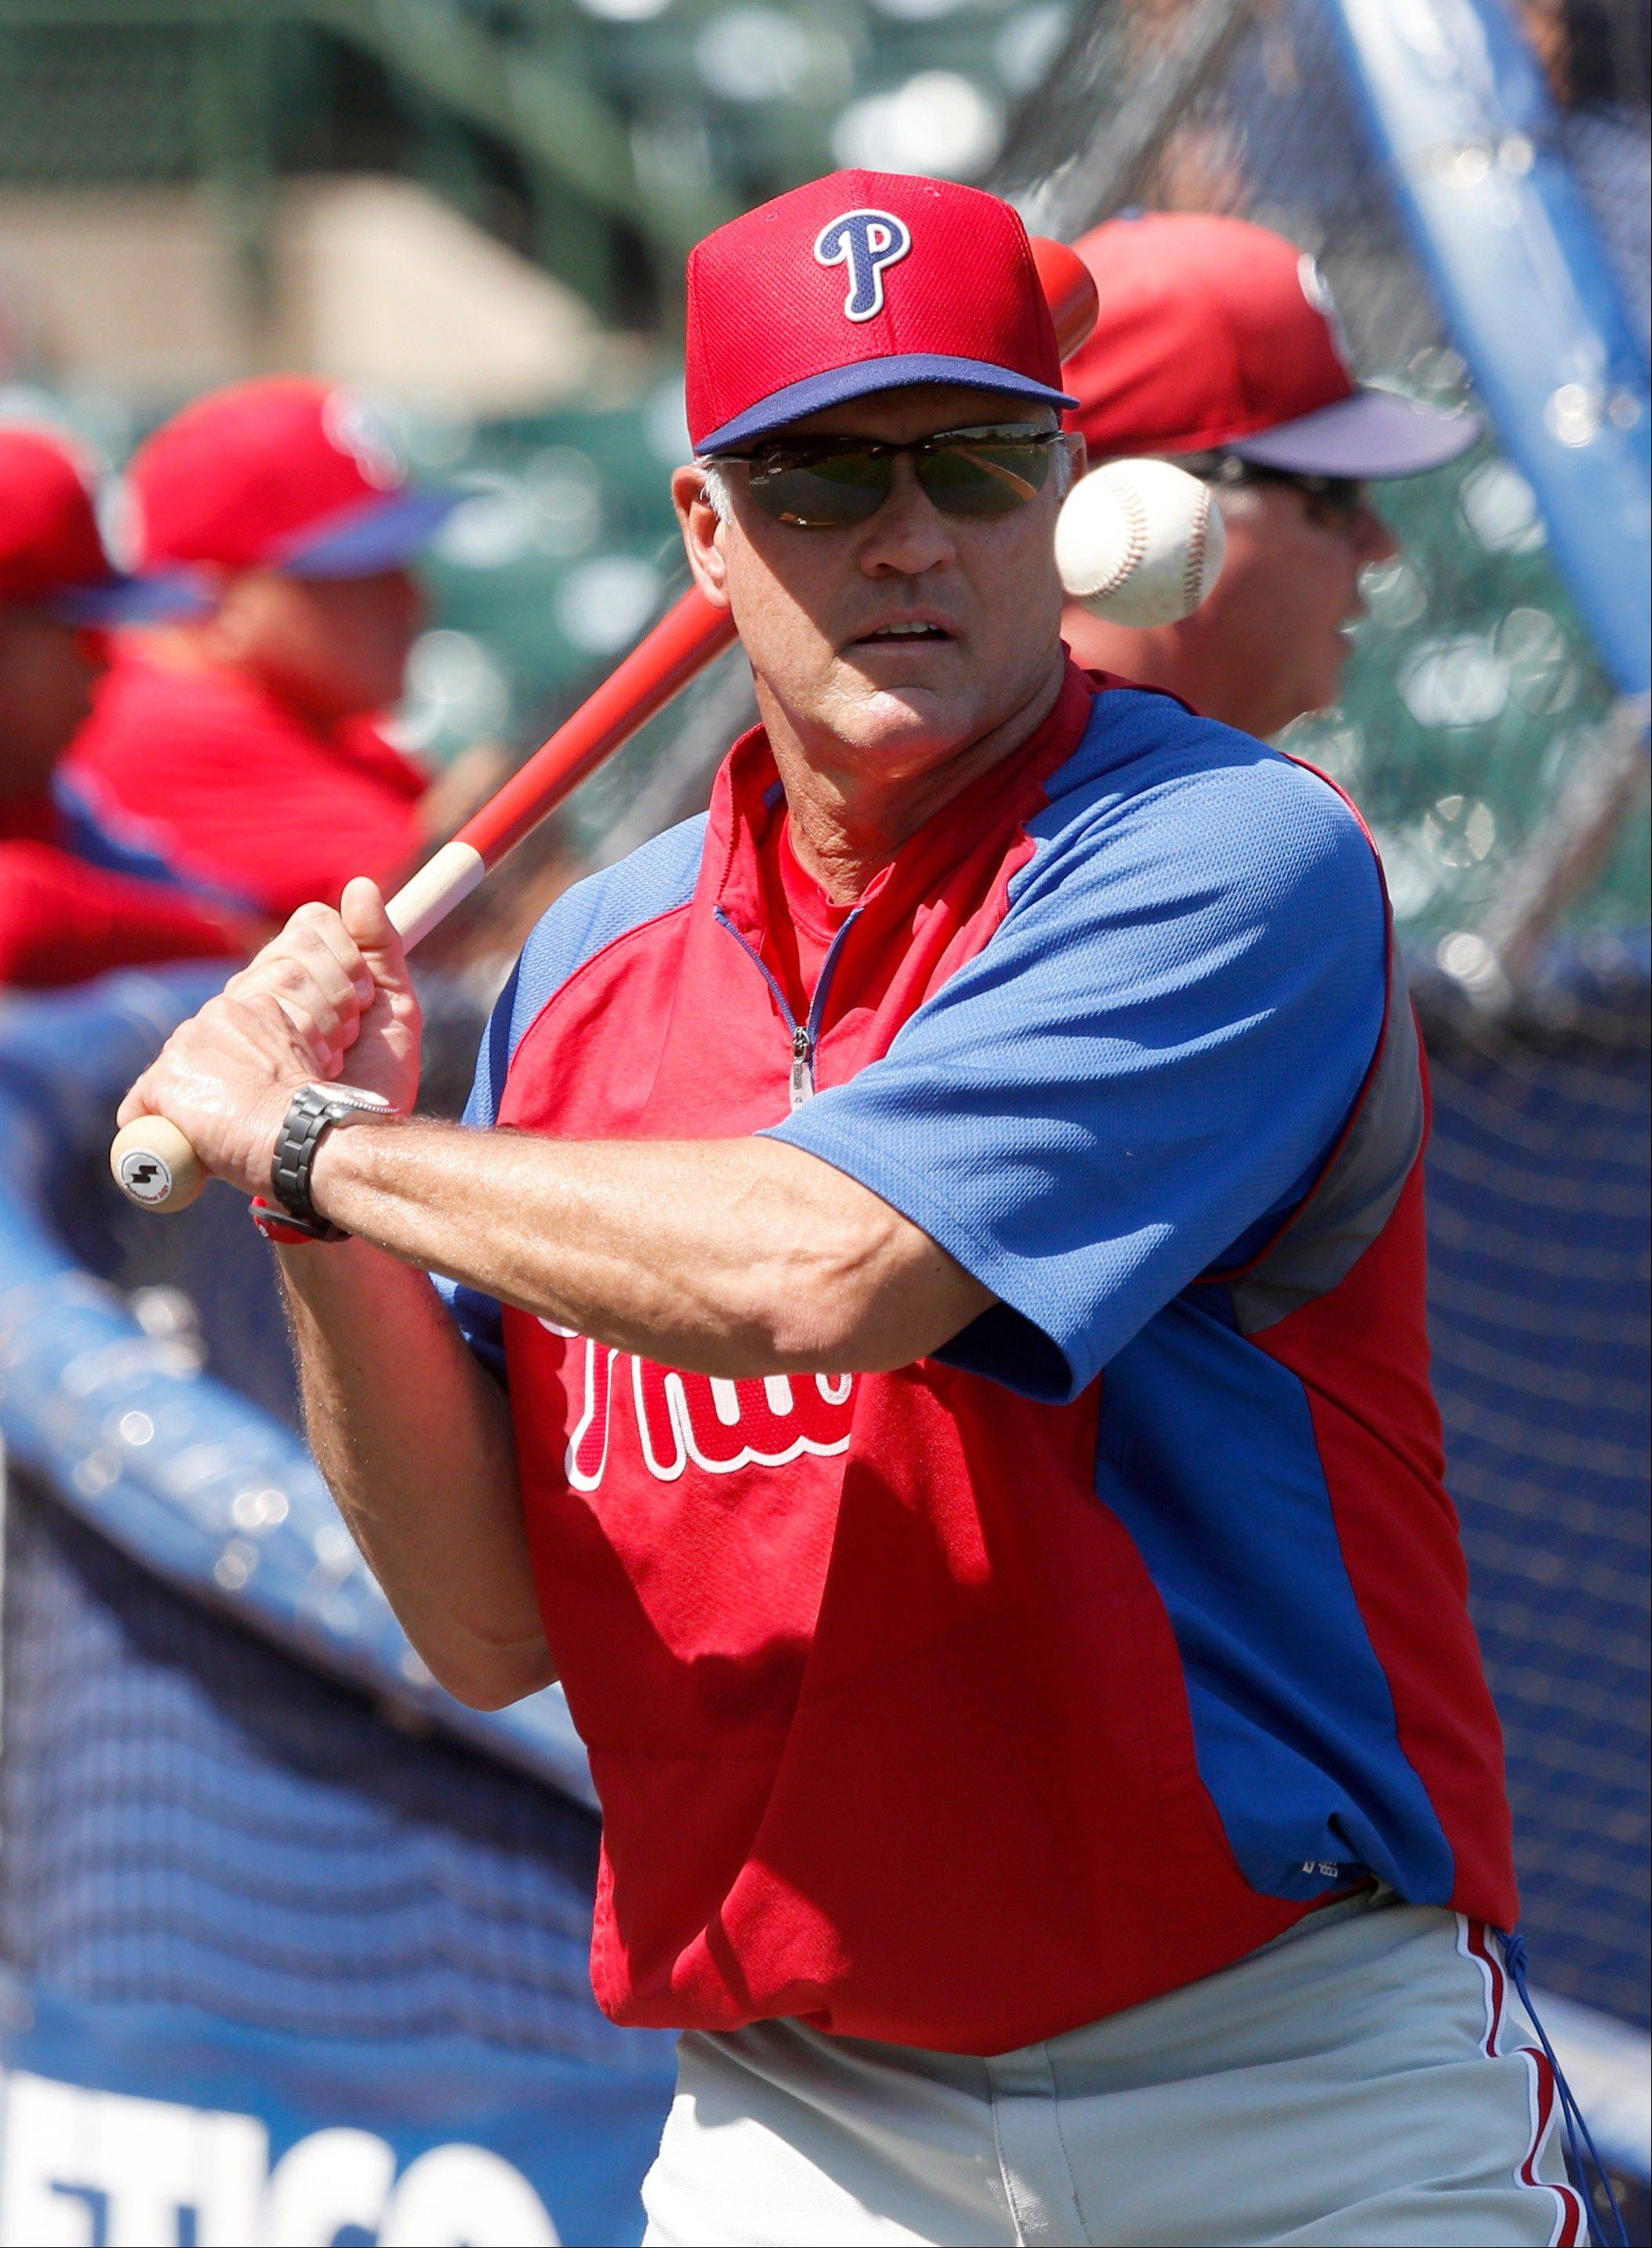 Phillies interim manager Ryne Sandberg conducts infield practice Friday at Wrigley Field.